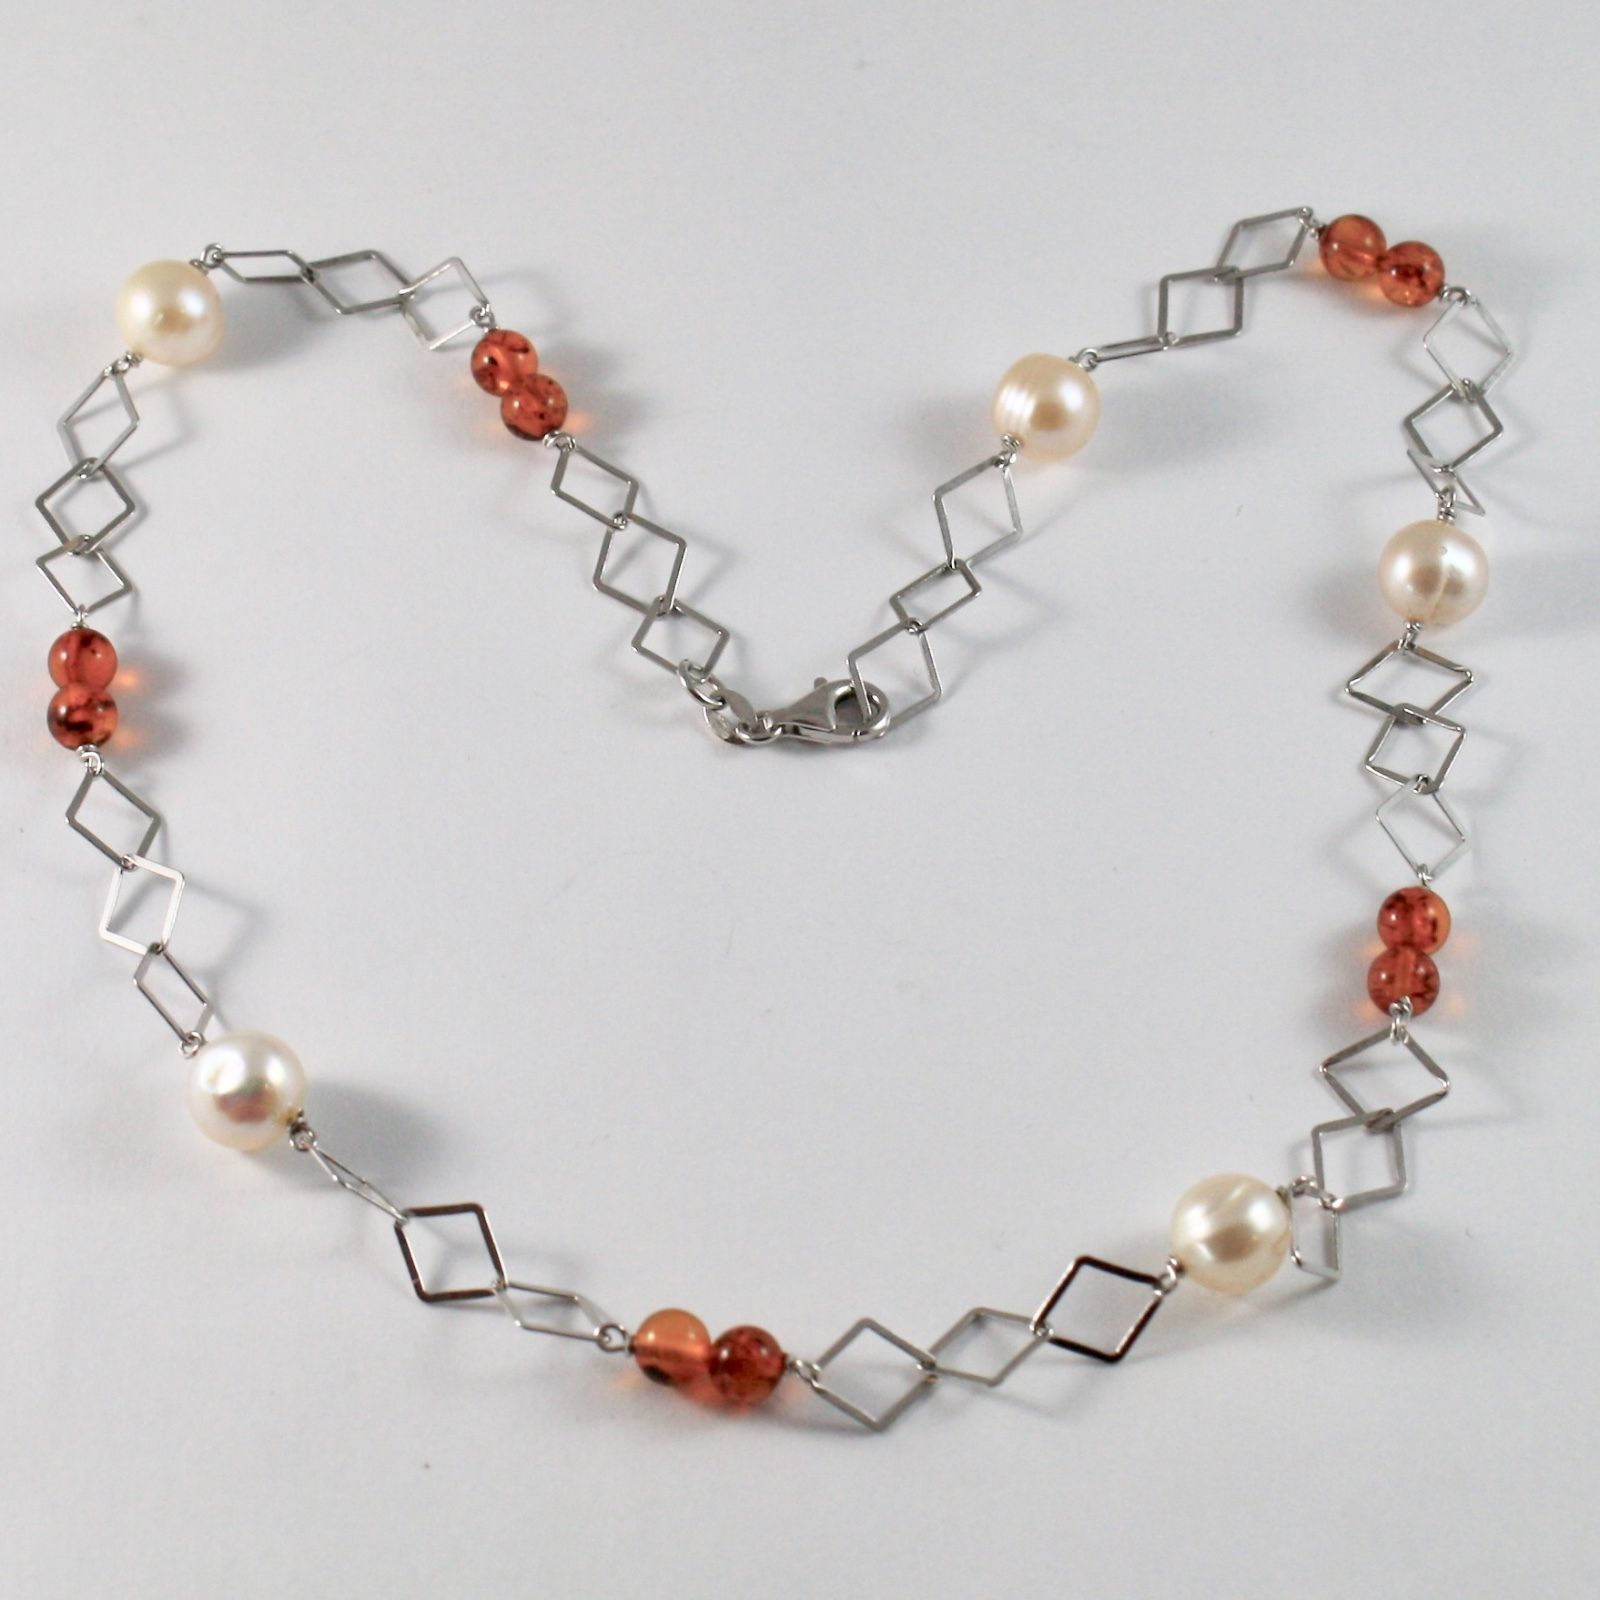 925 STERLING SILVER NECKLACE WITH AMBER BALTICA AND PEARLS OF WATER DOLCE COLOUR